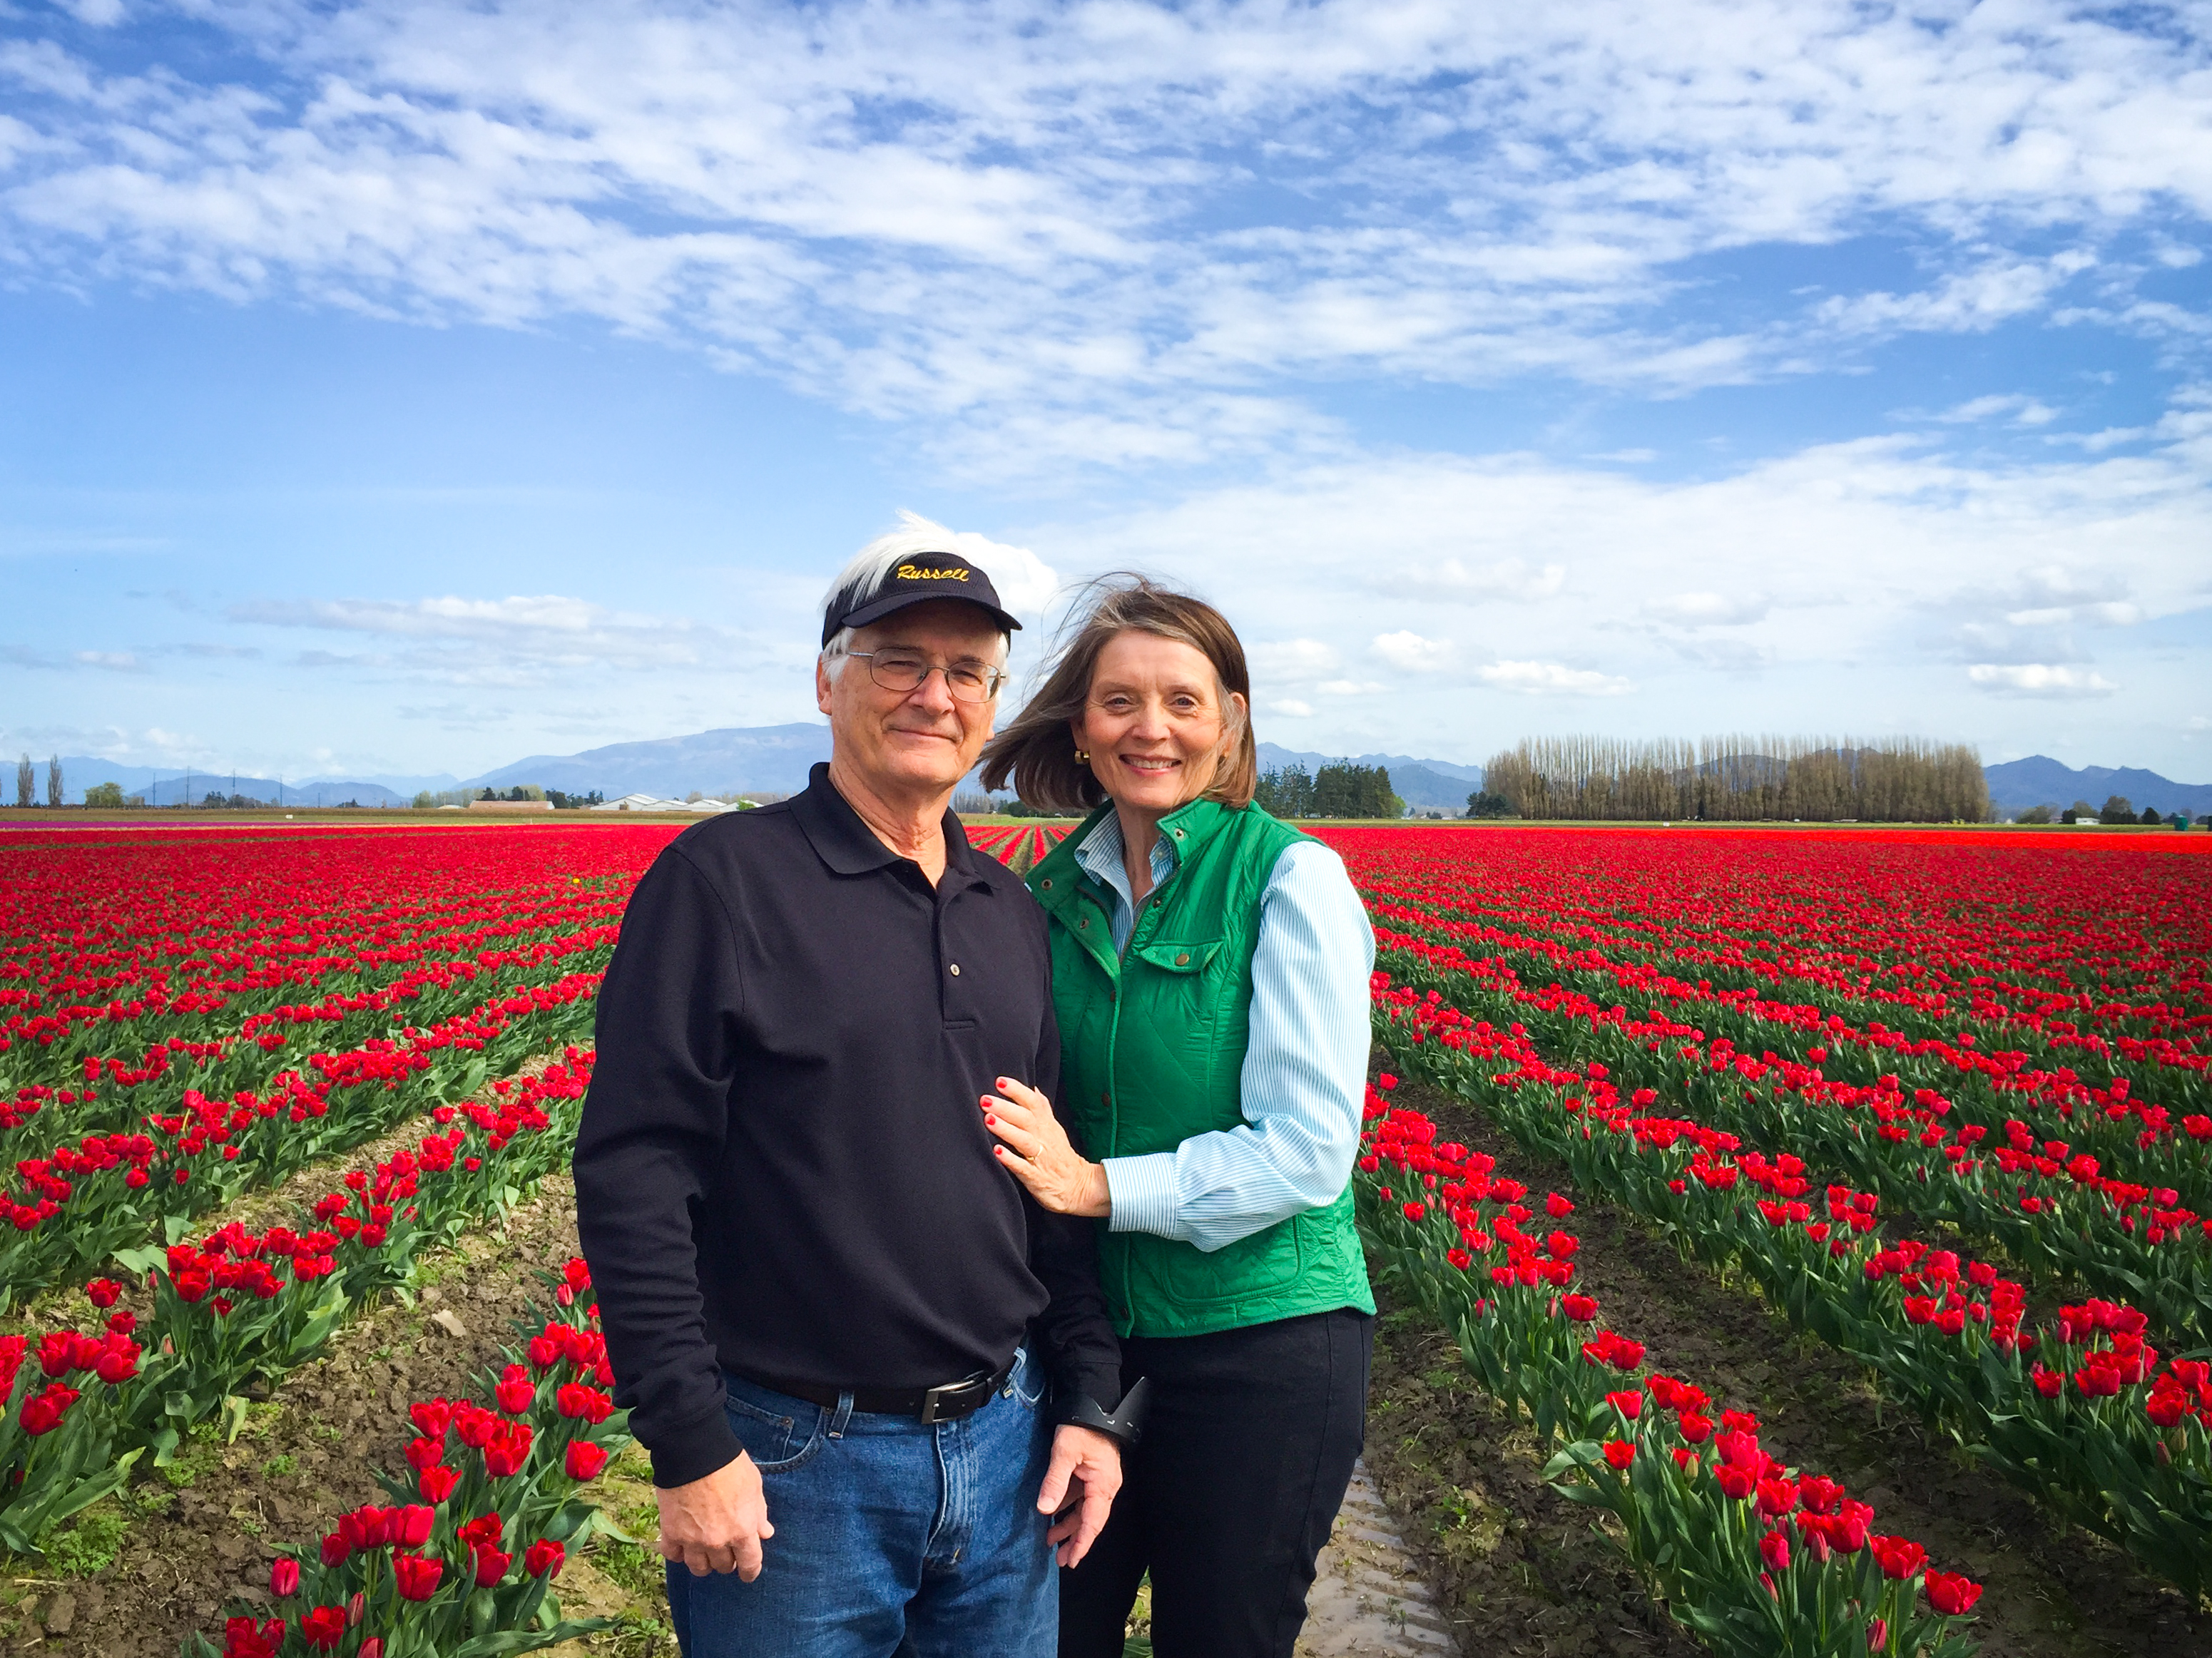 Mom and Dad enjoying the fields